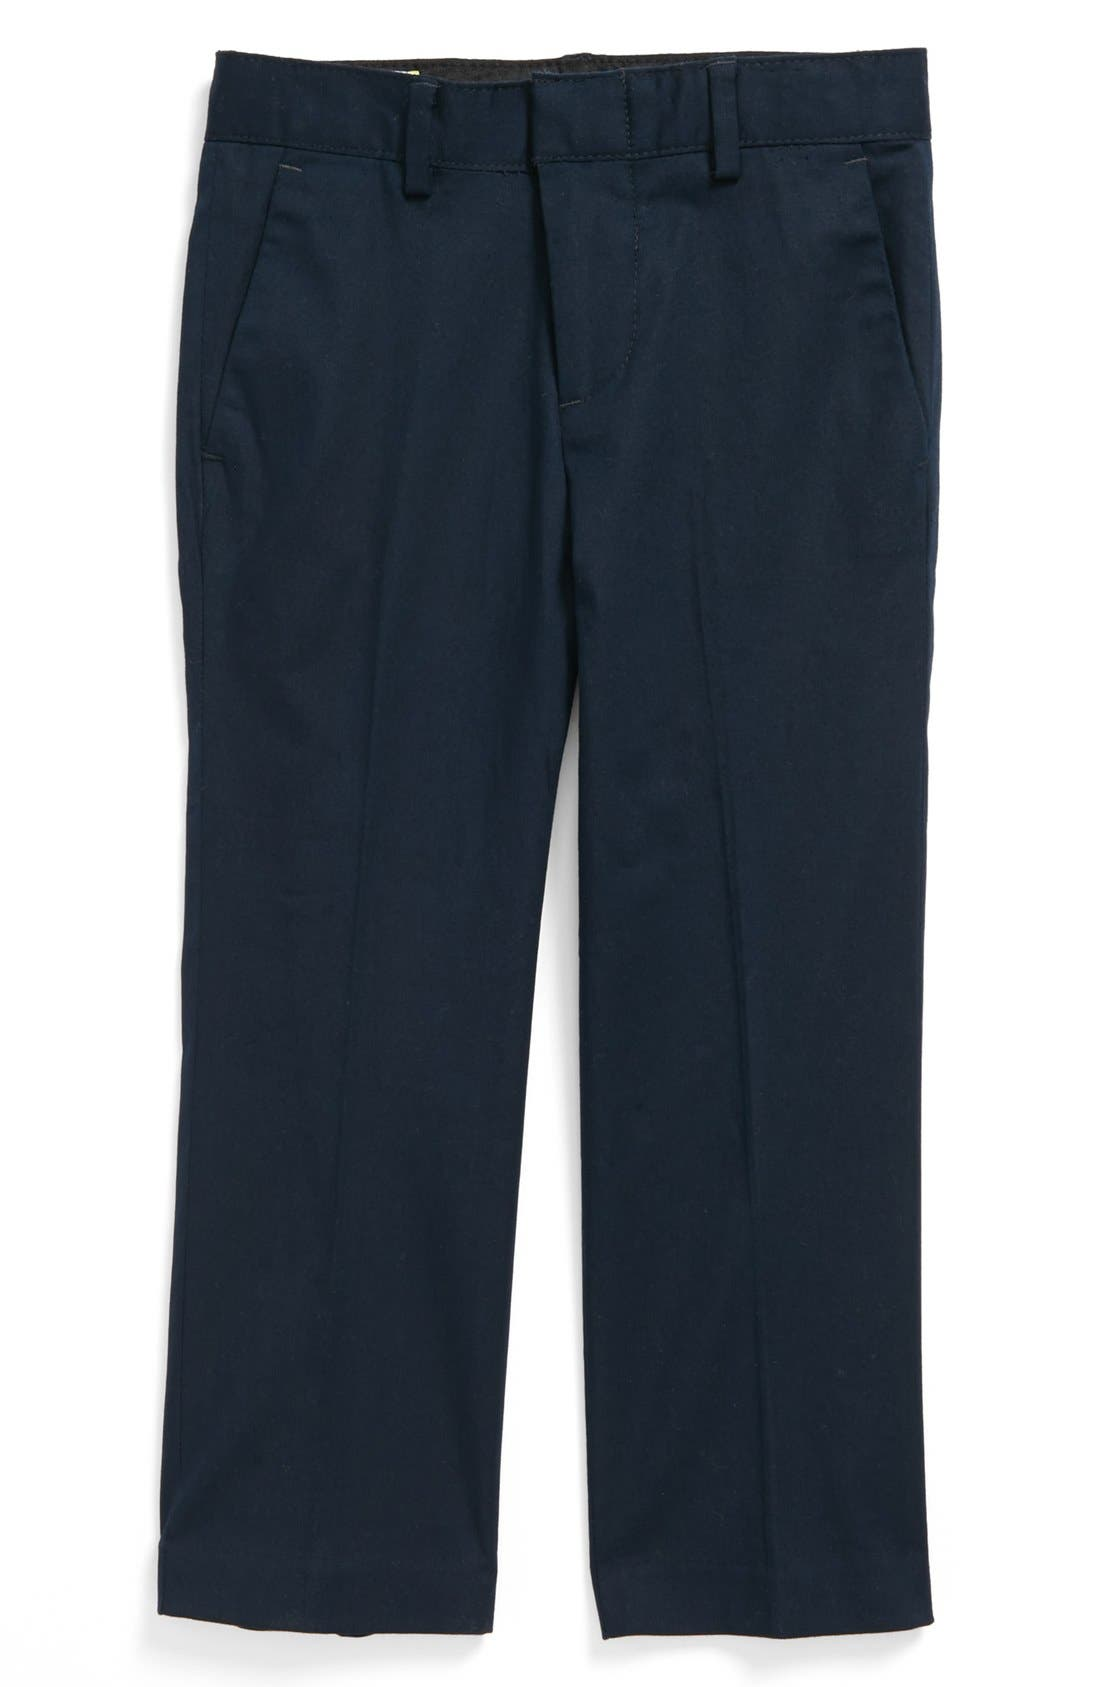 Main Image - C2 by Calibrate 'Sterling' Stretch Cotton Dress Pants (Toddler Boys)